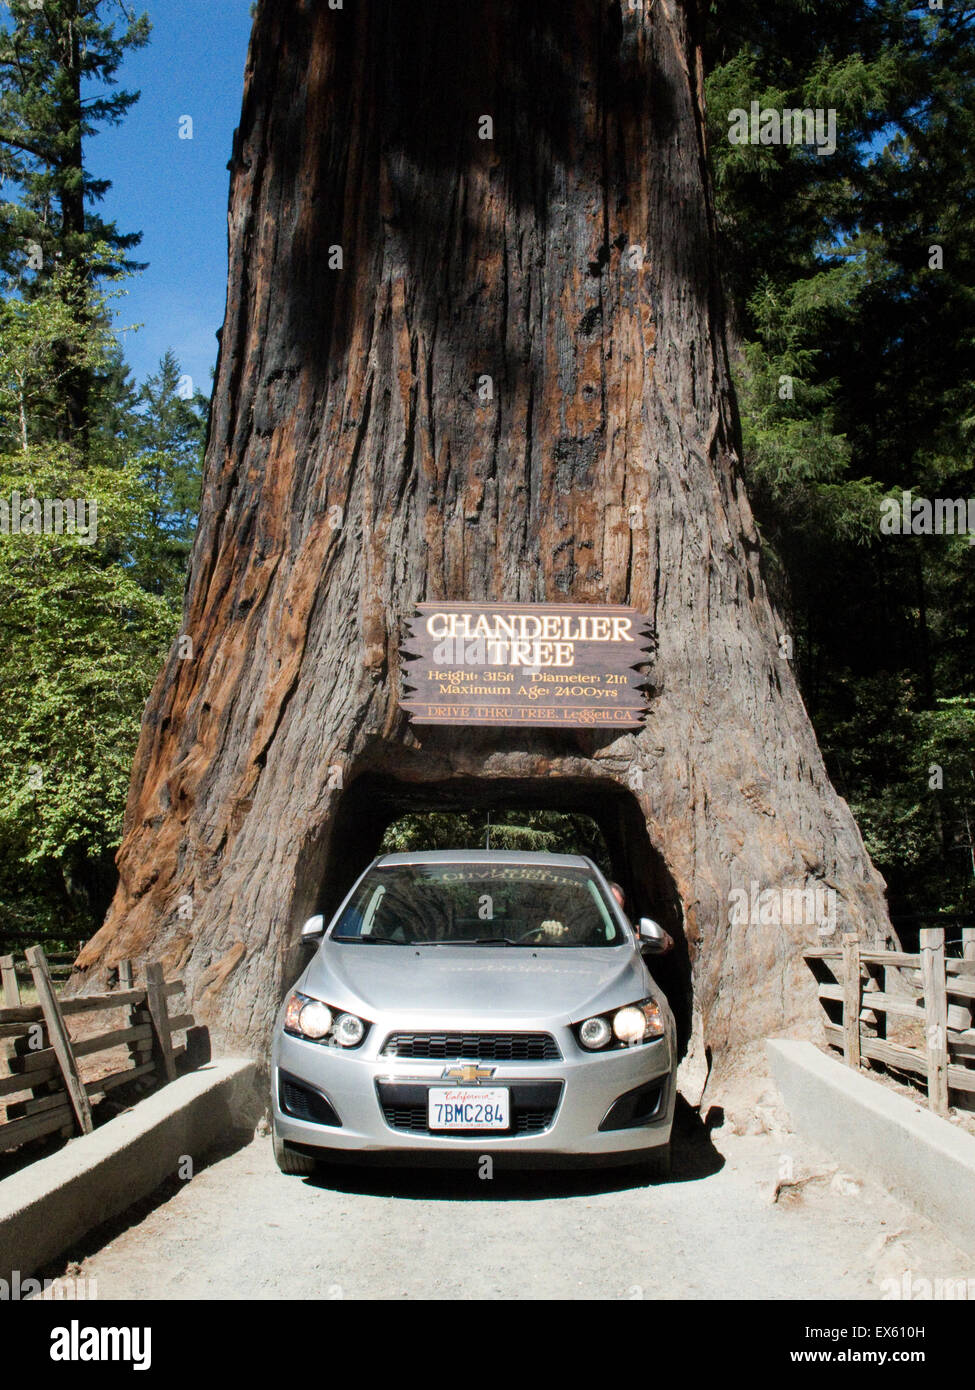 Chandelier Tree In Drive Thru Park A Coast Redwood With Hole Large Enough To Through